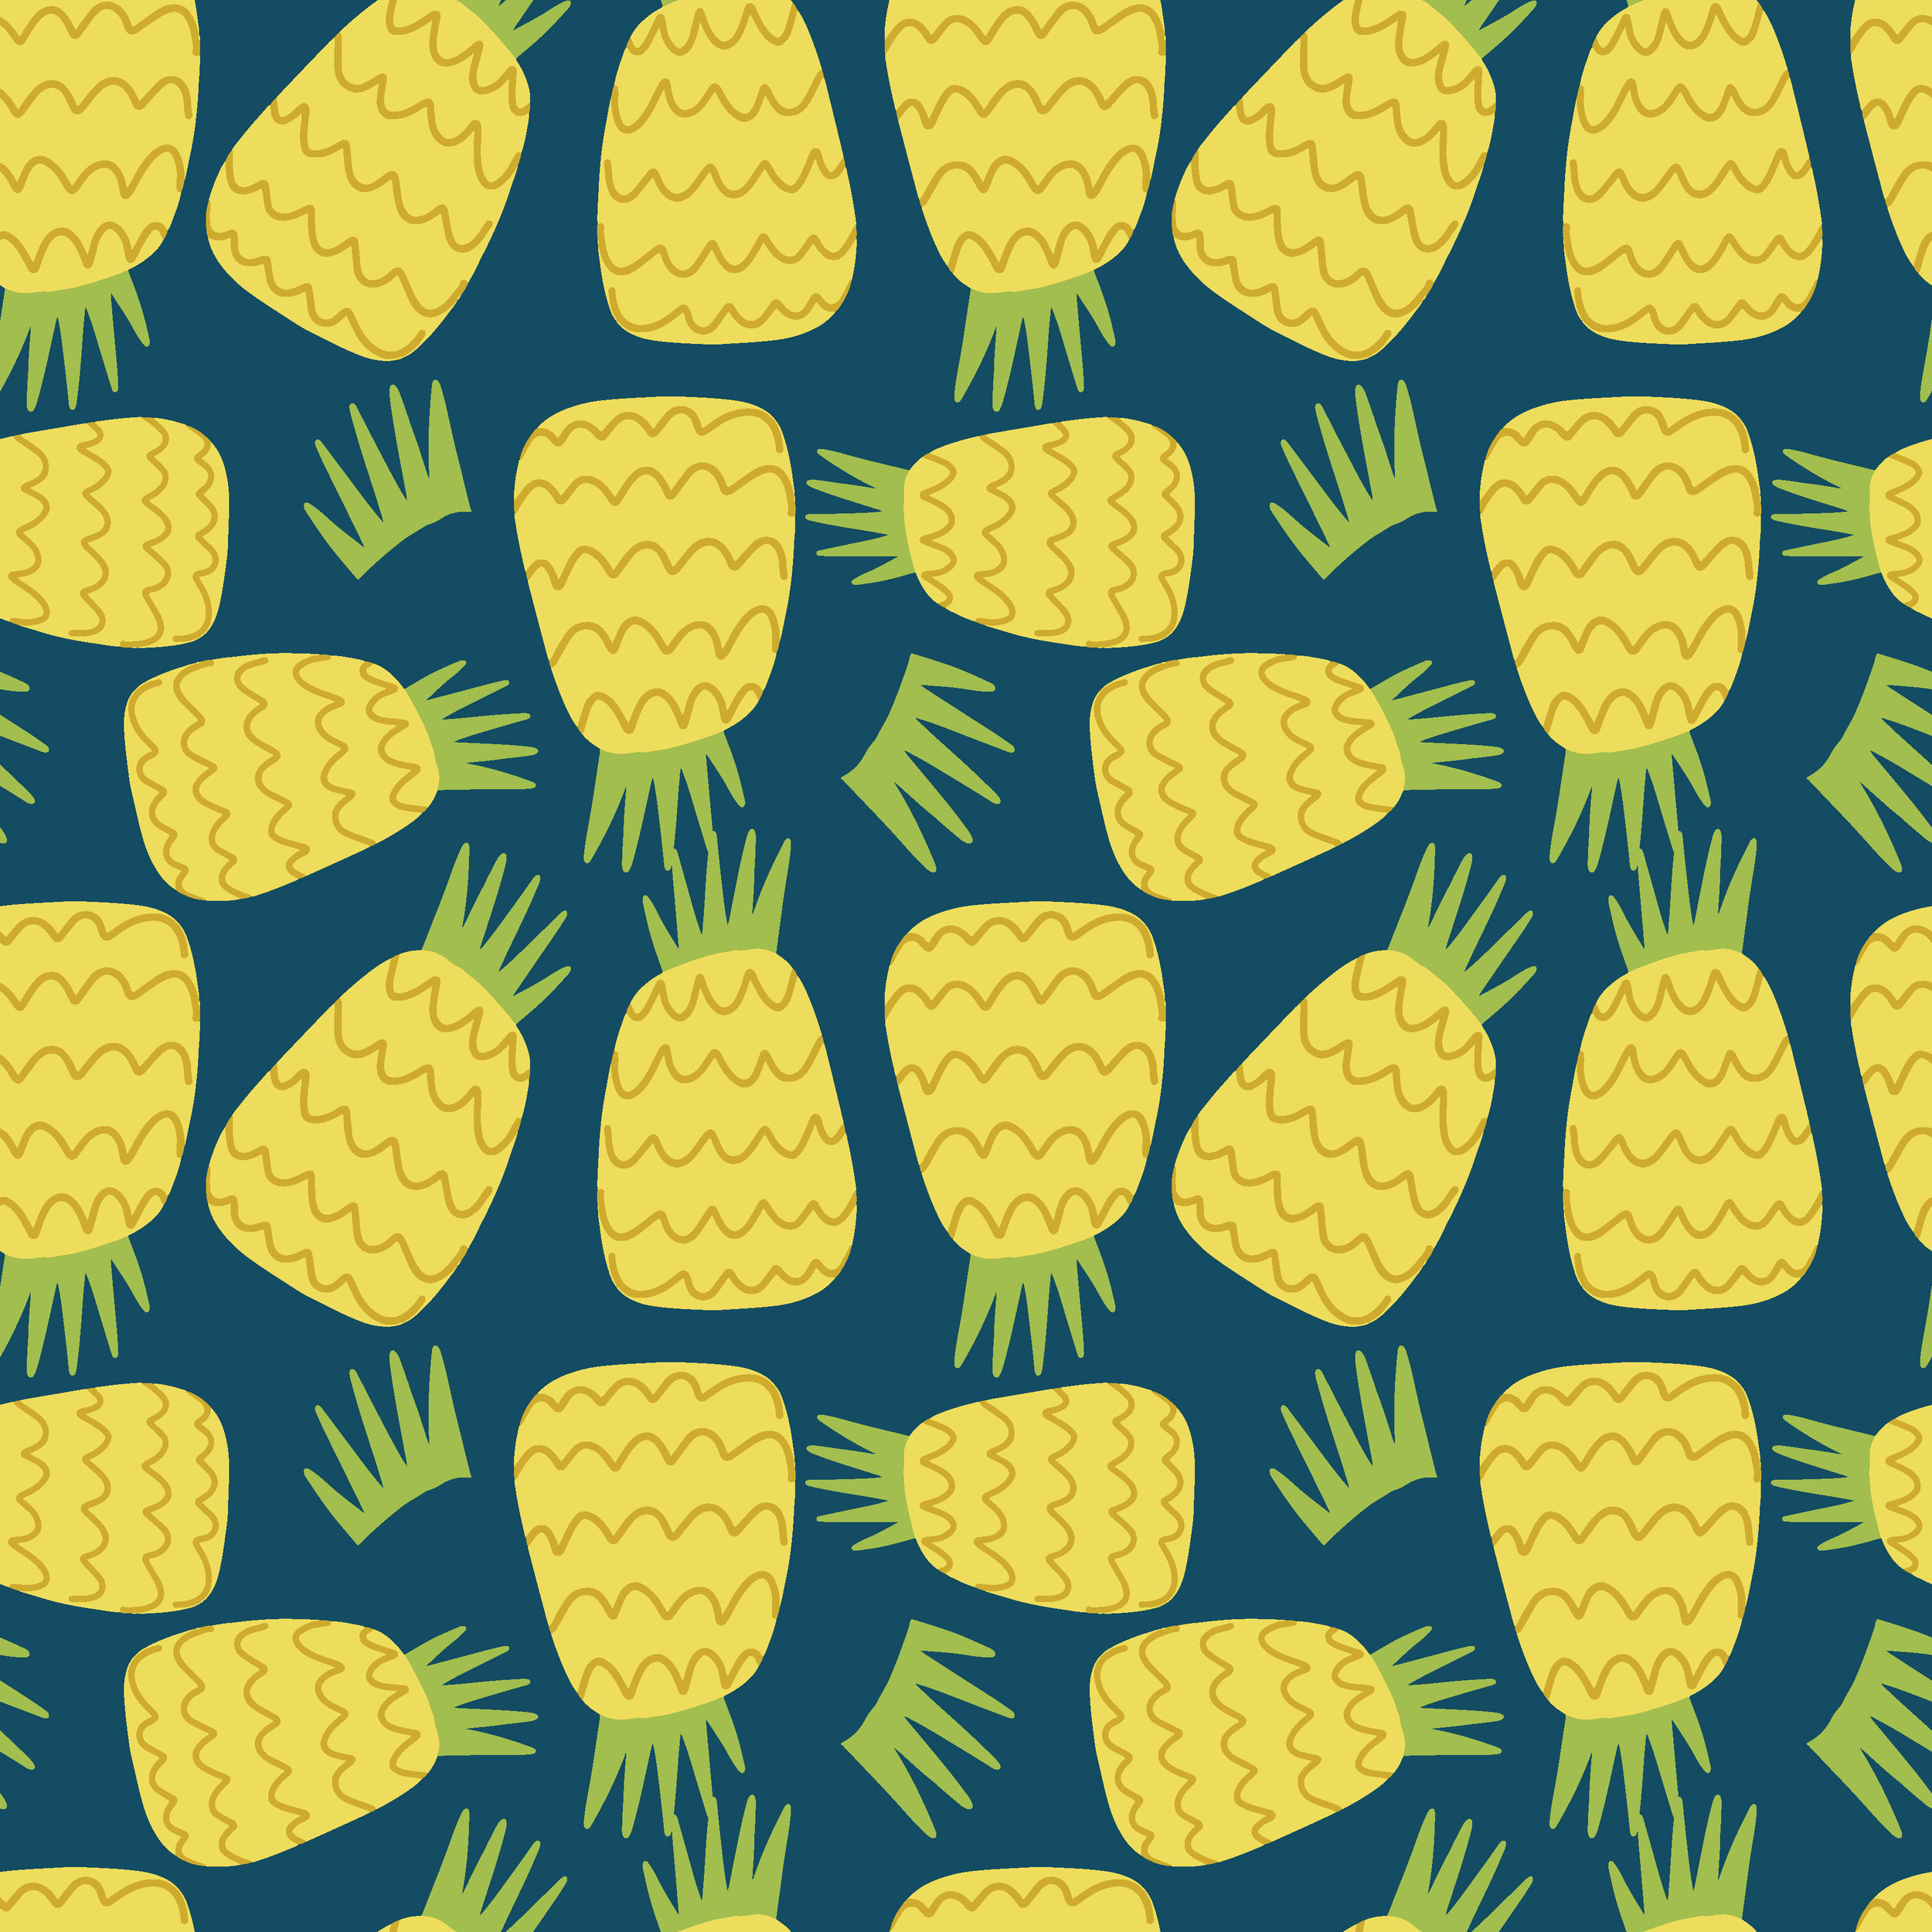 SUMMERFRUIT_Patterns-05.jpg